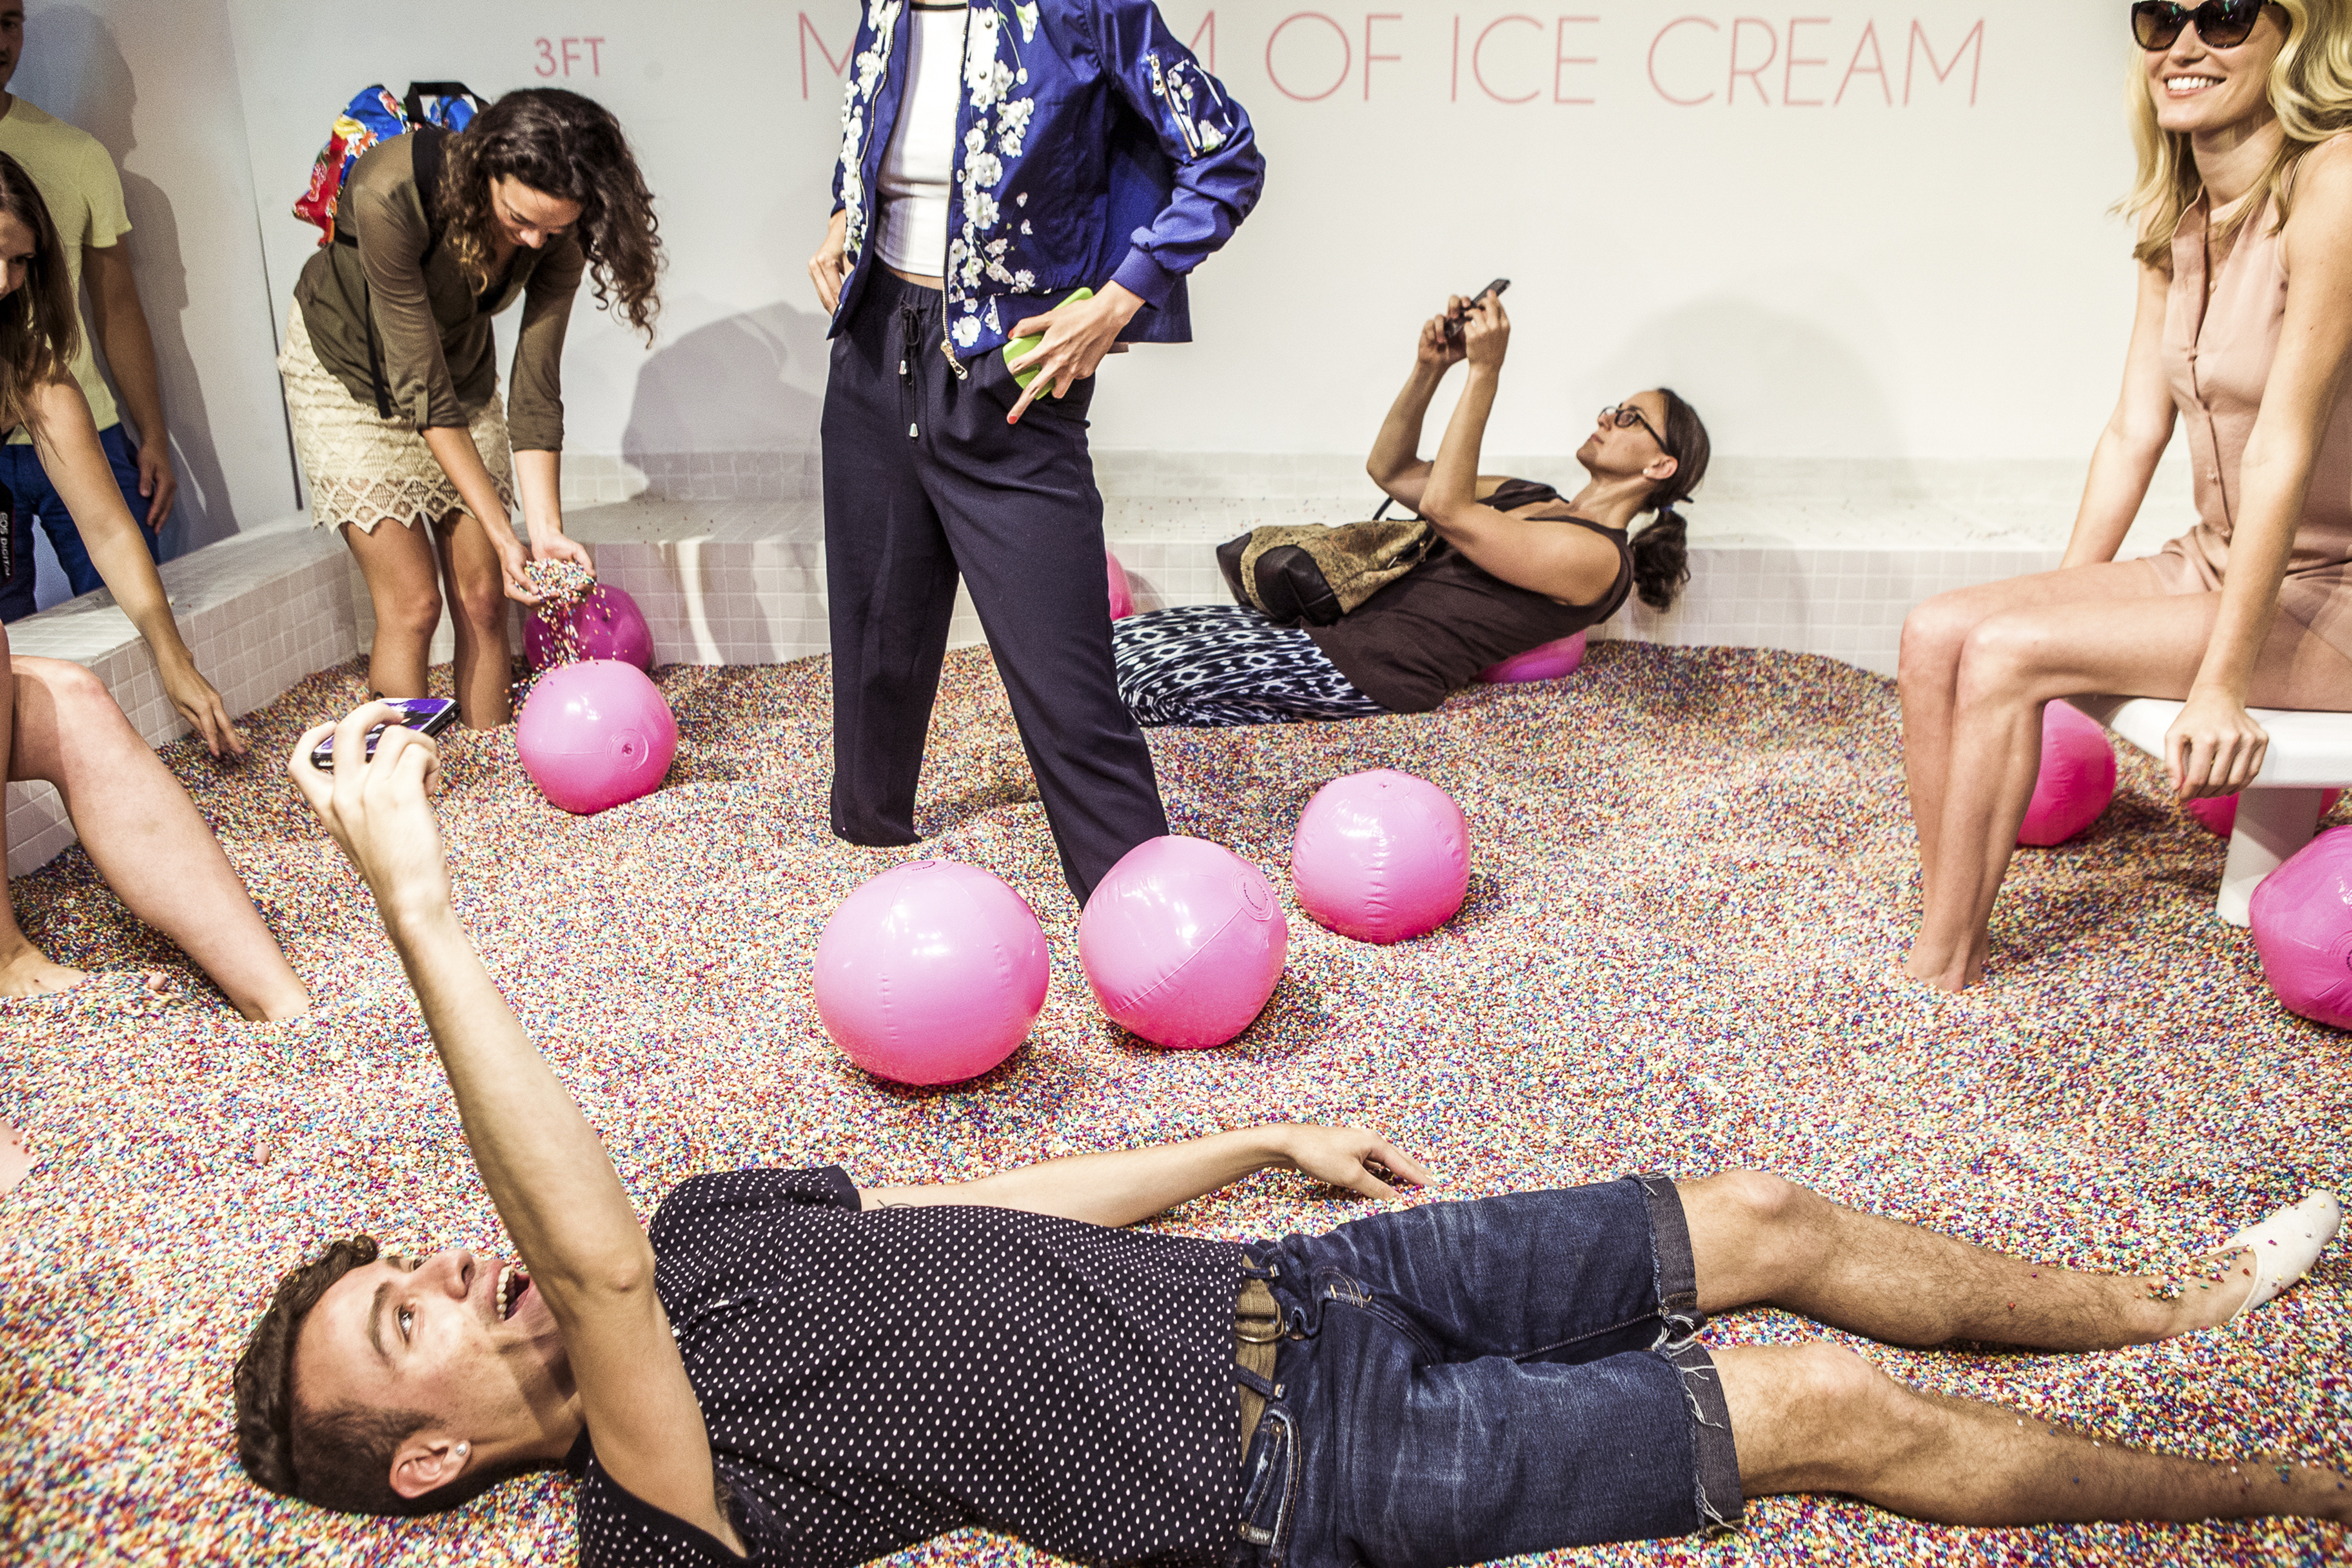 Attendees play and take photos in a pool of non-edible sprinkles during a press preview of the Museum of Ice Cream in New York.